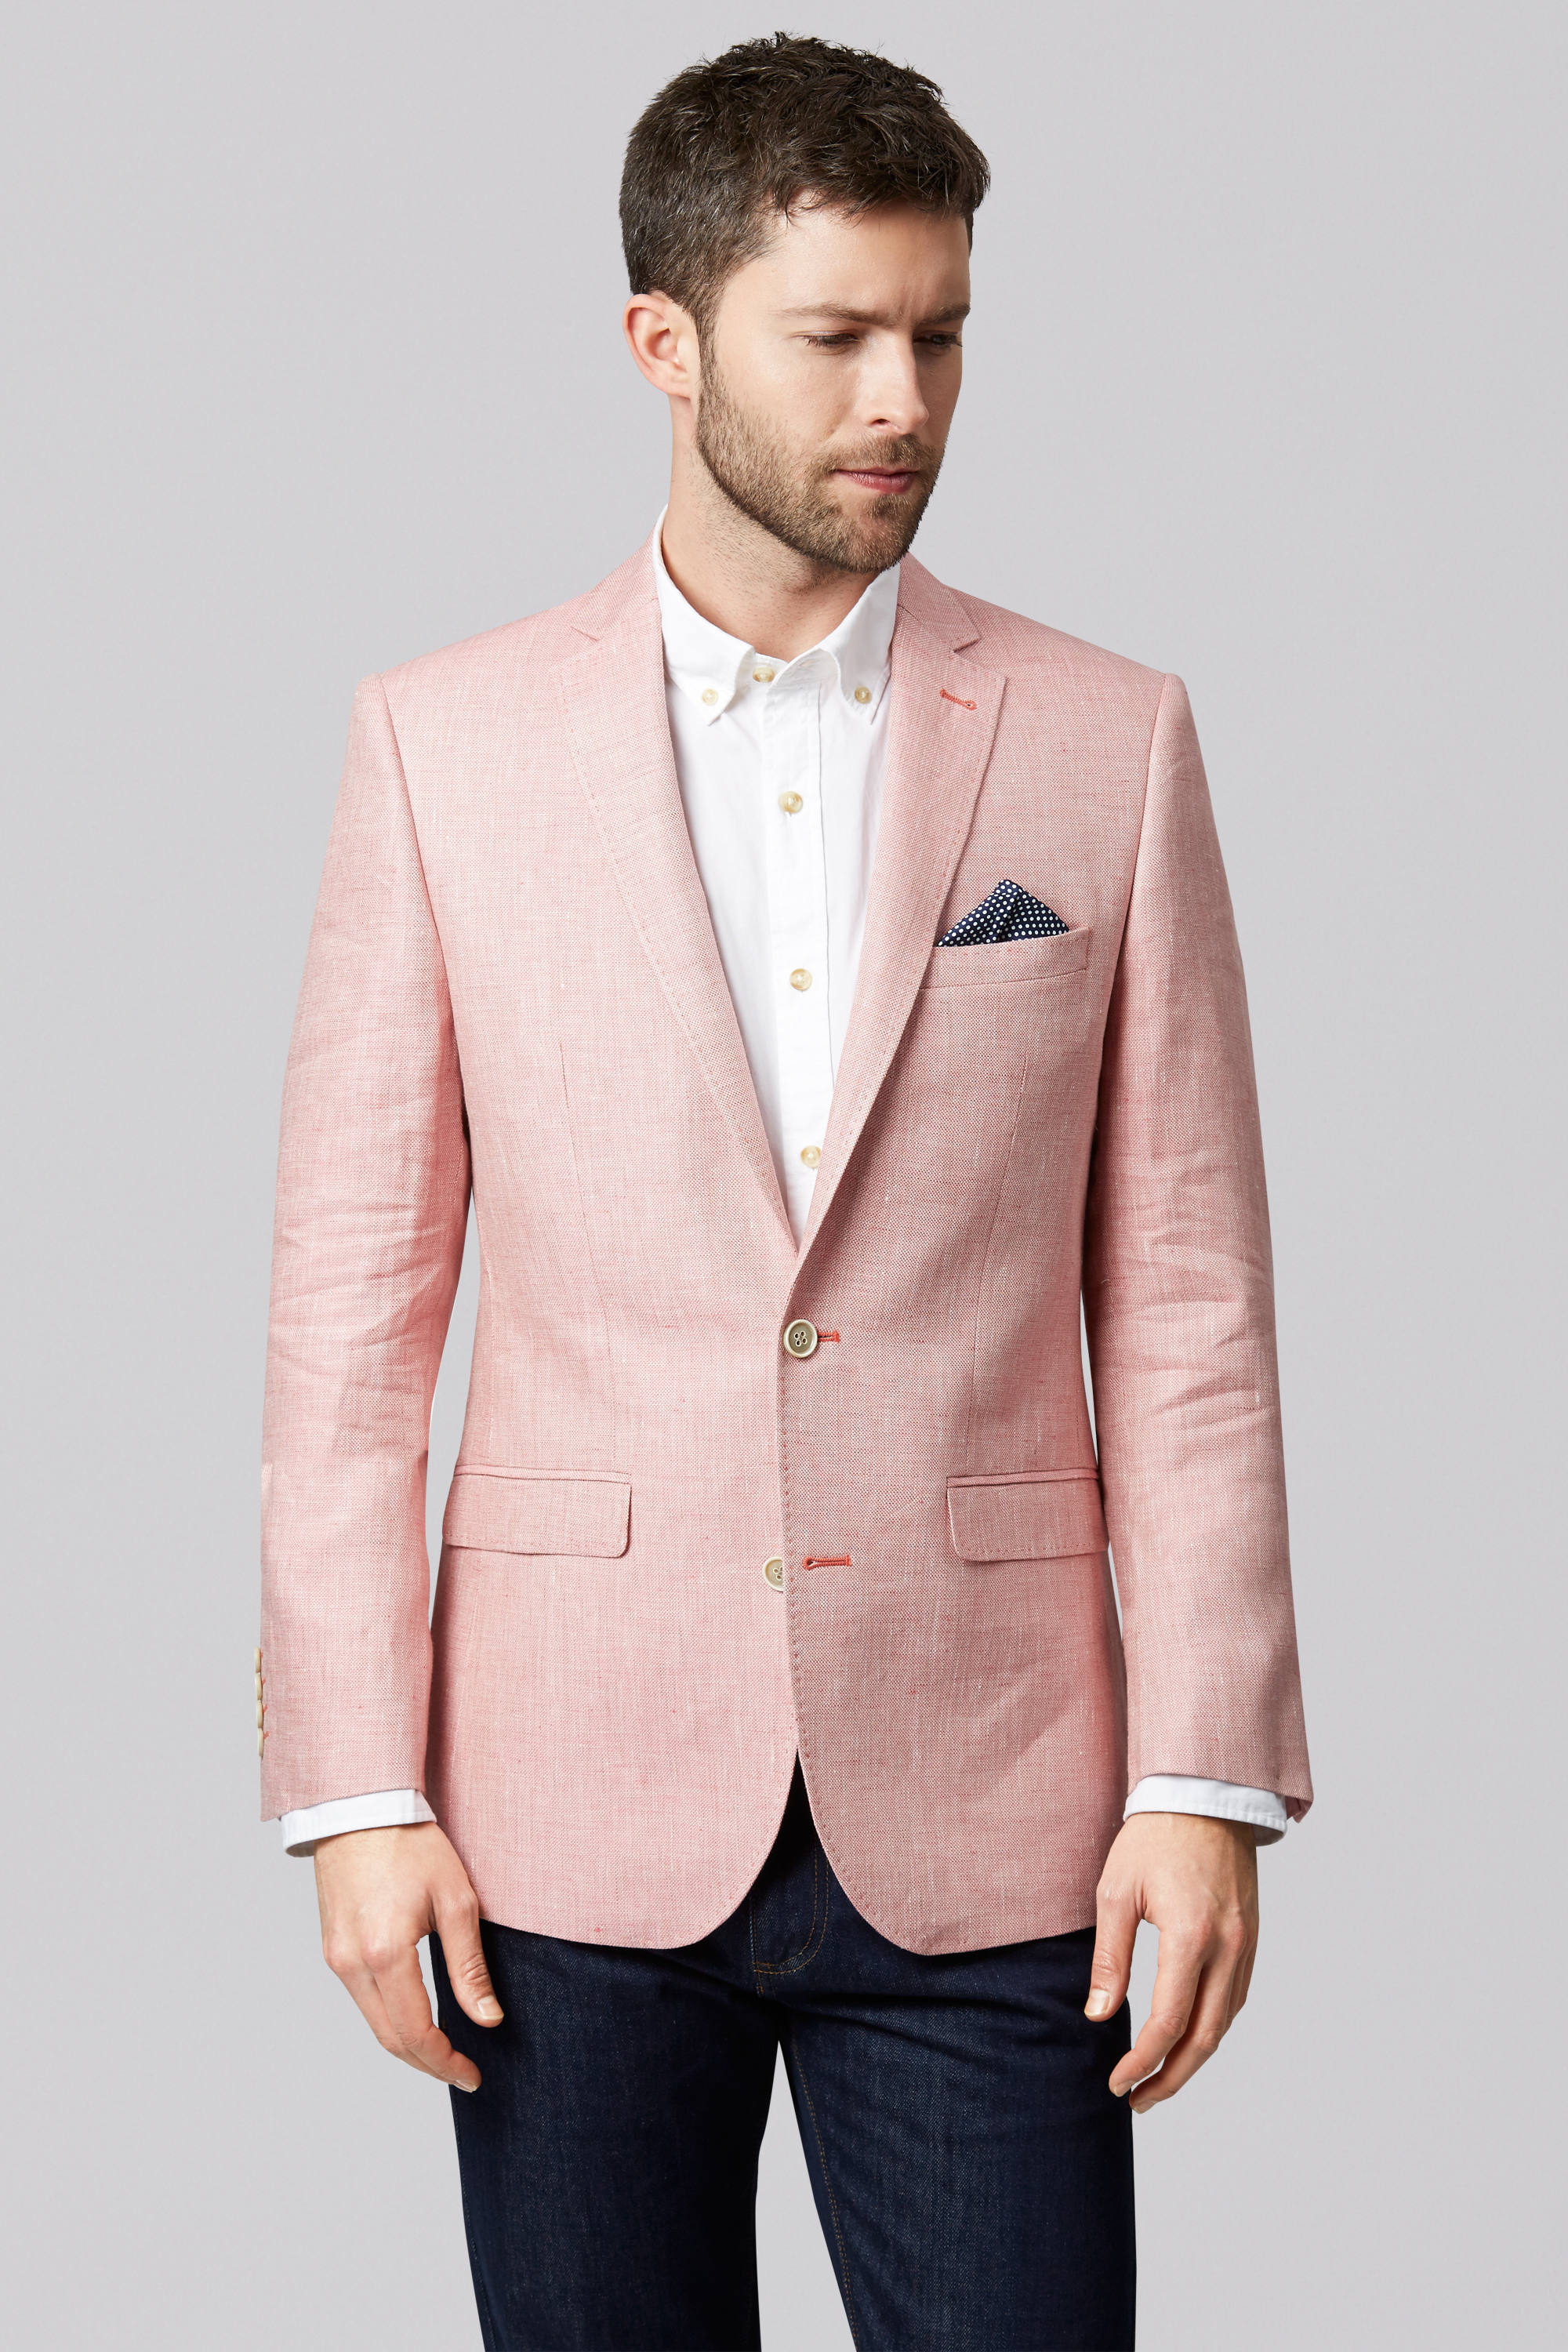 Moss 1851 Mens Coral Pink Suit Jacket, Tailored Fit, Two Button ...